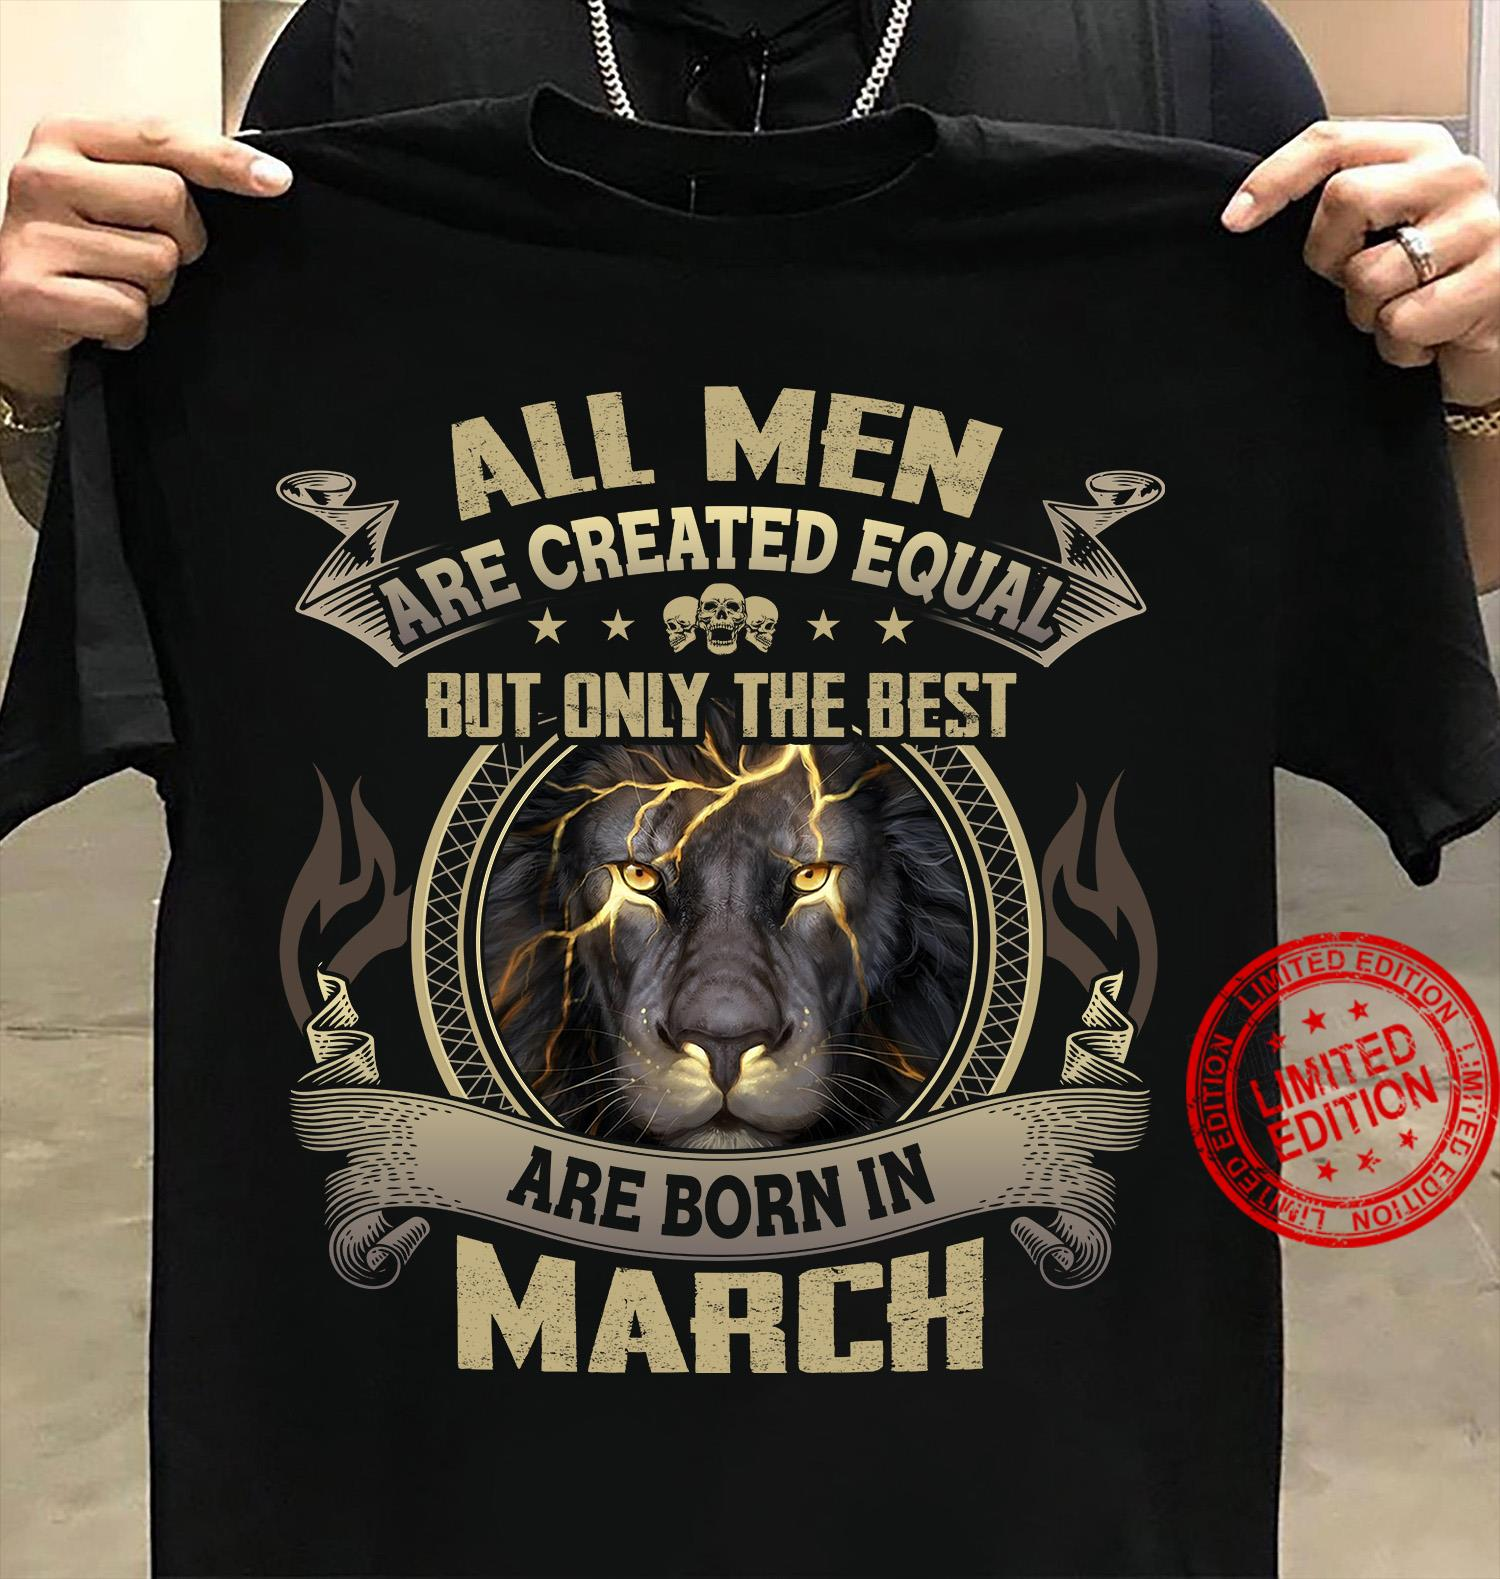 All Men Are Created Equal But Only Best Are Born In March Shirt